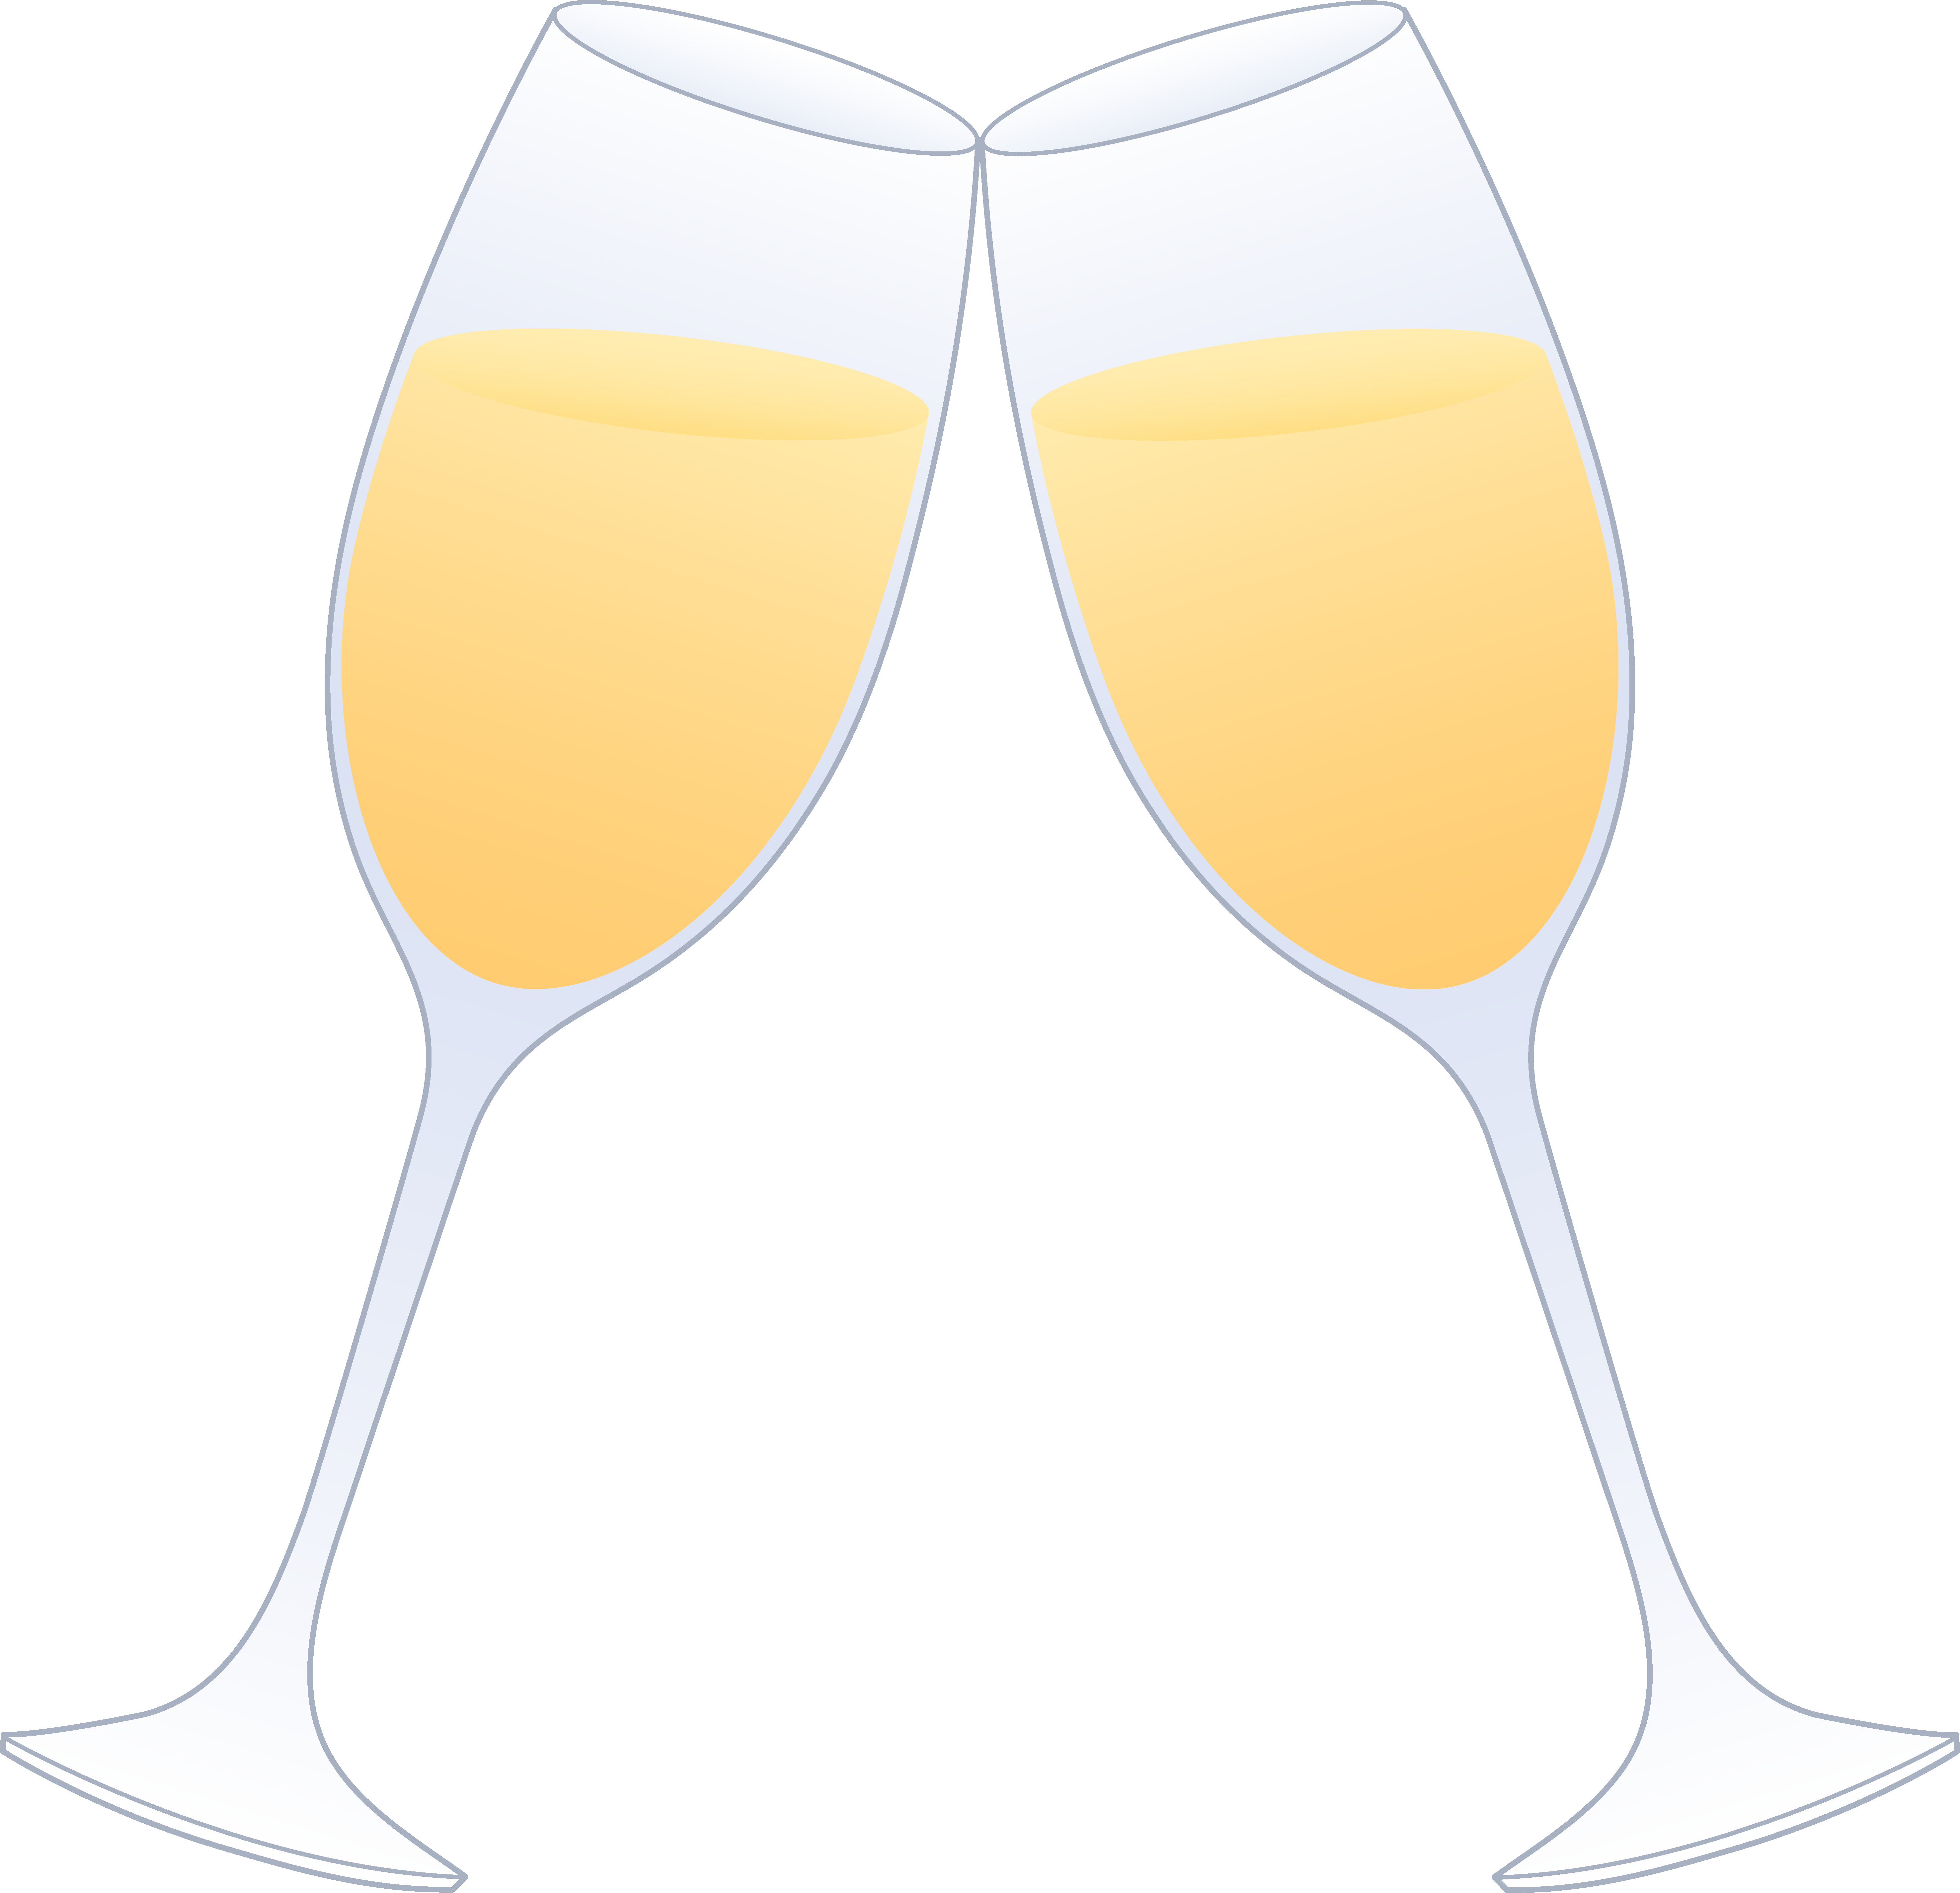 Glasses clipart 4th july, Glasses 4th july Transparent FREE.